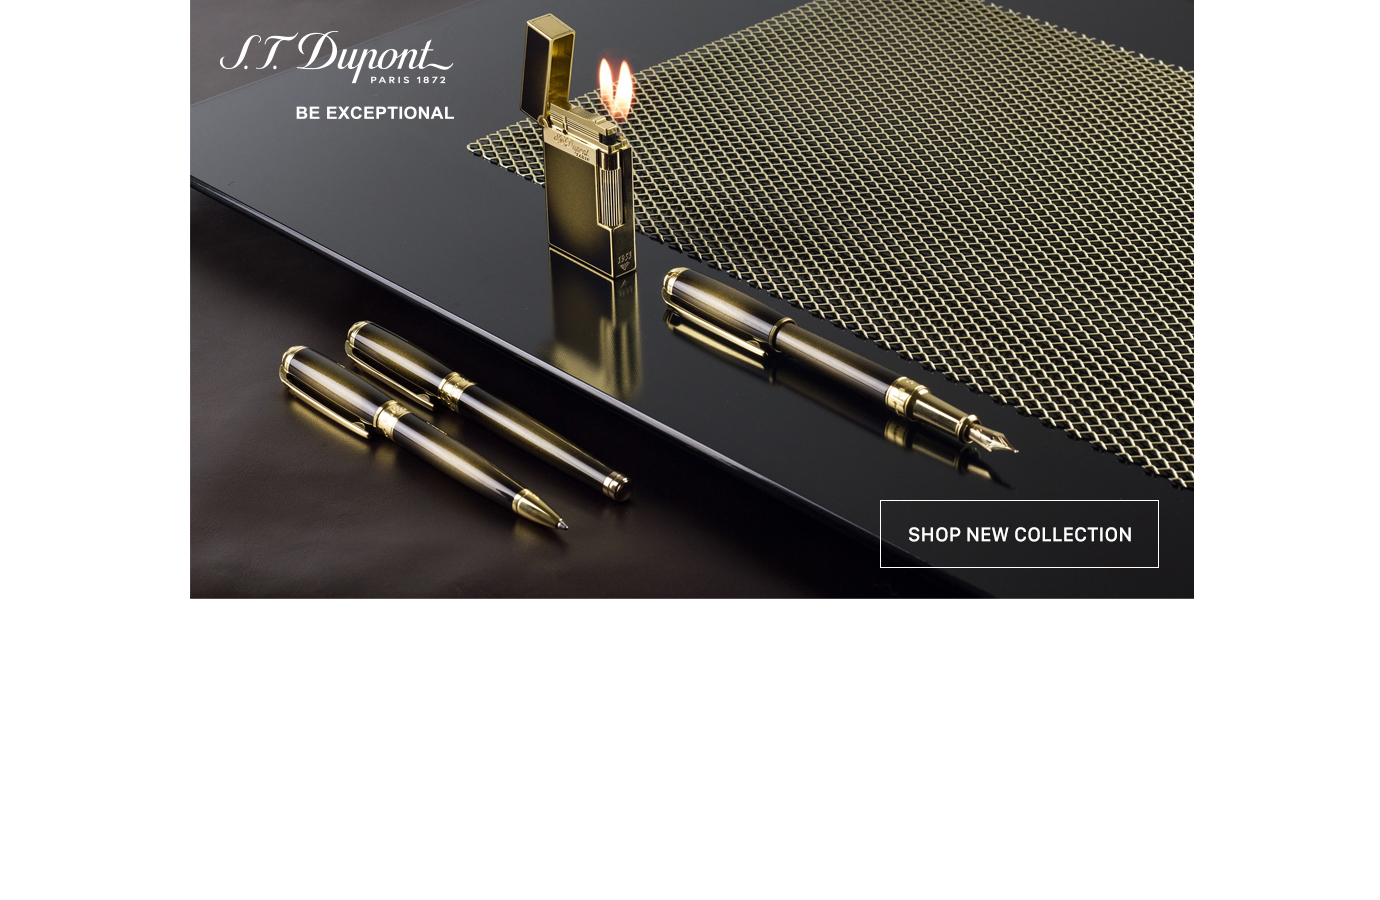 S.T. Dupont Collection -